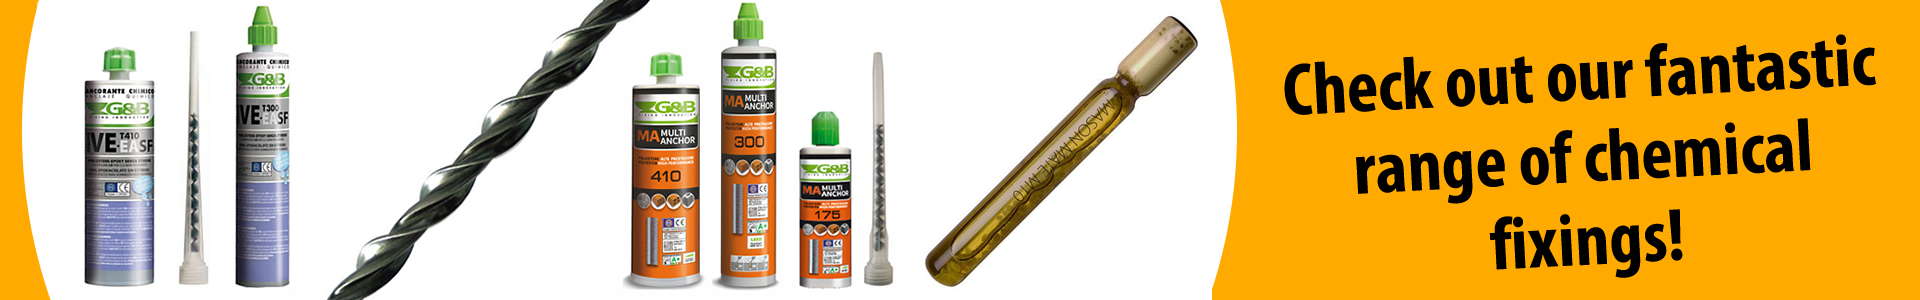 Check out our fantastic range of chemical fixings!